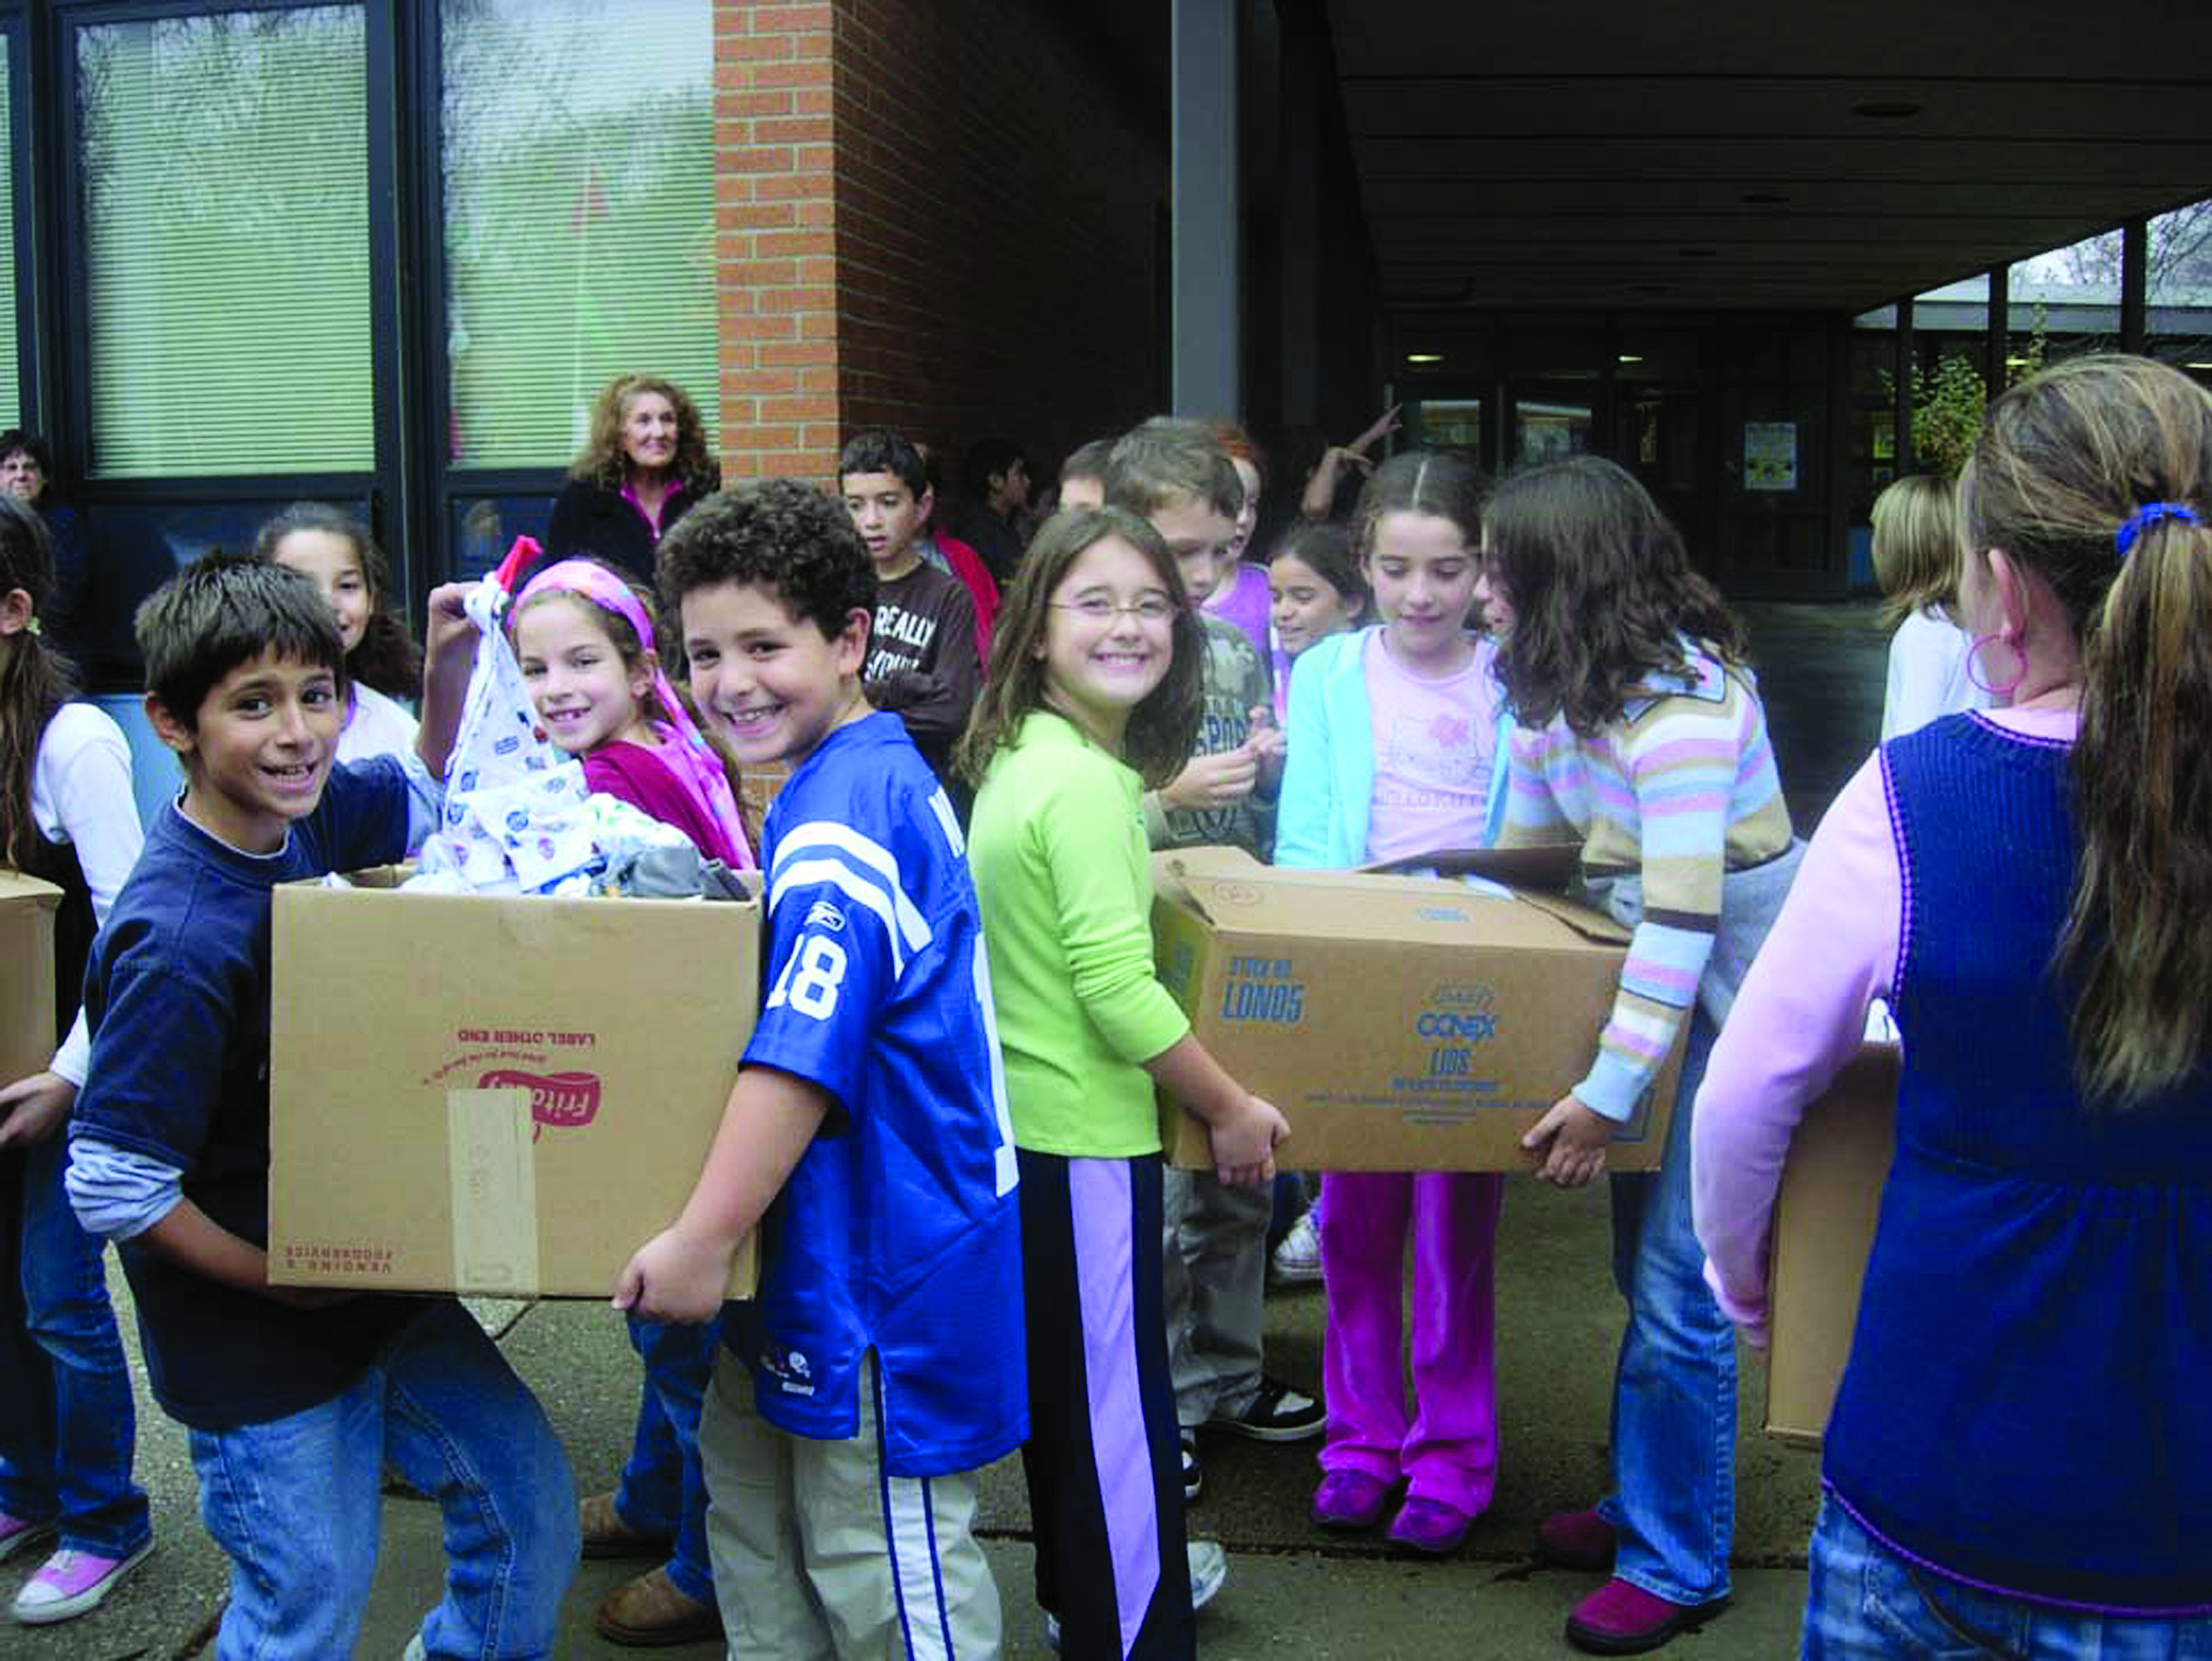 Students at Ardsley elementary school participating for nonprofit Pajama Party